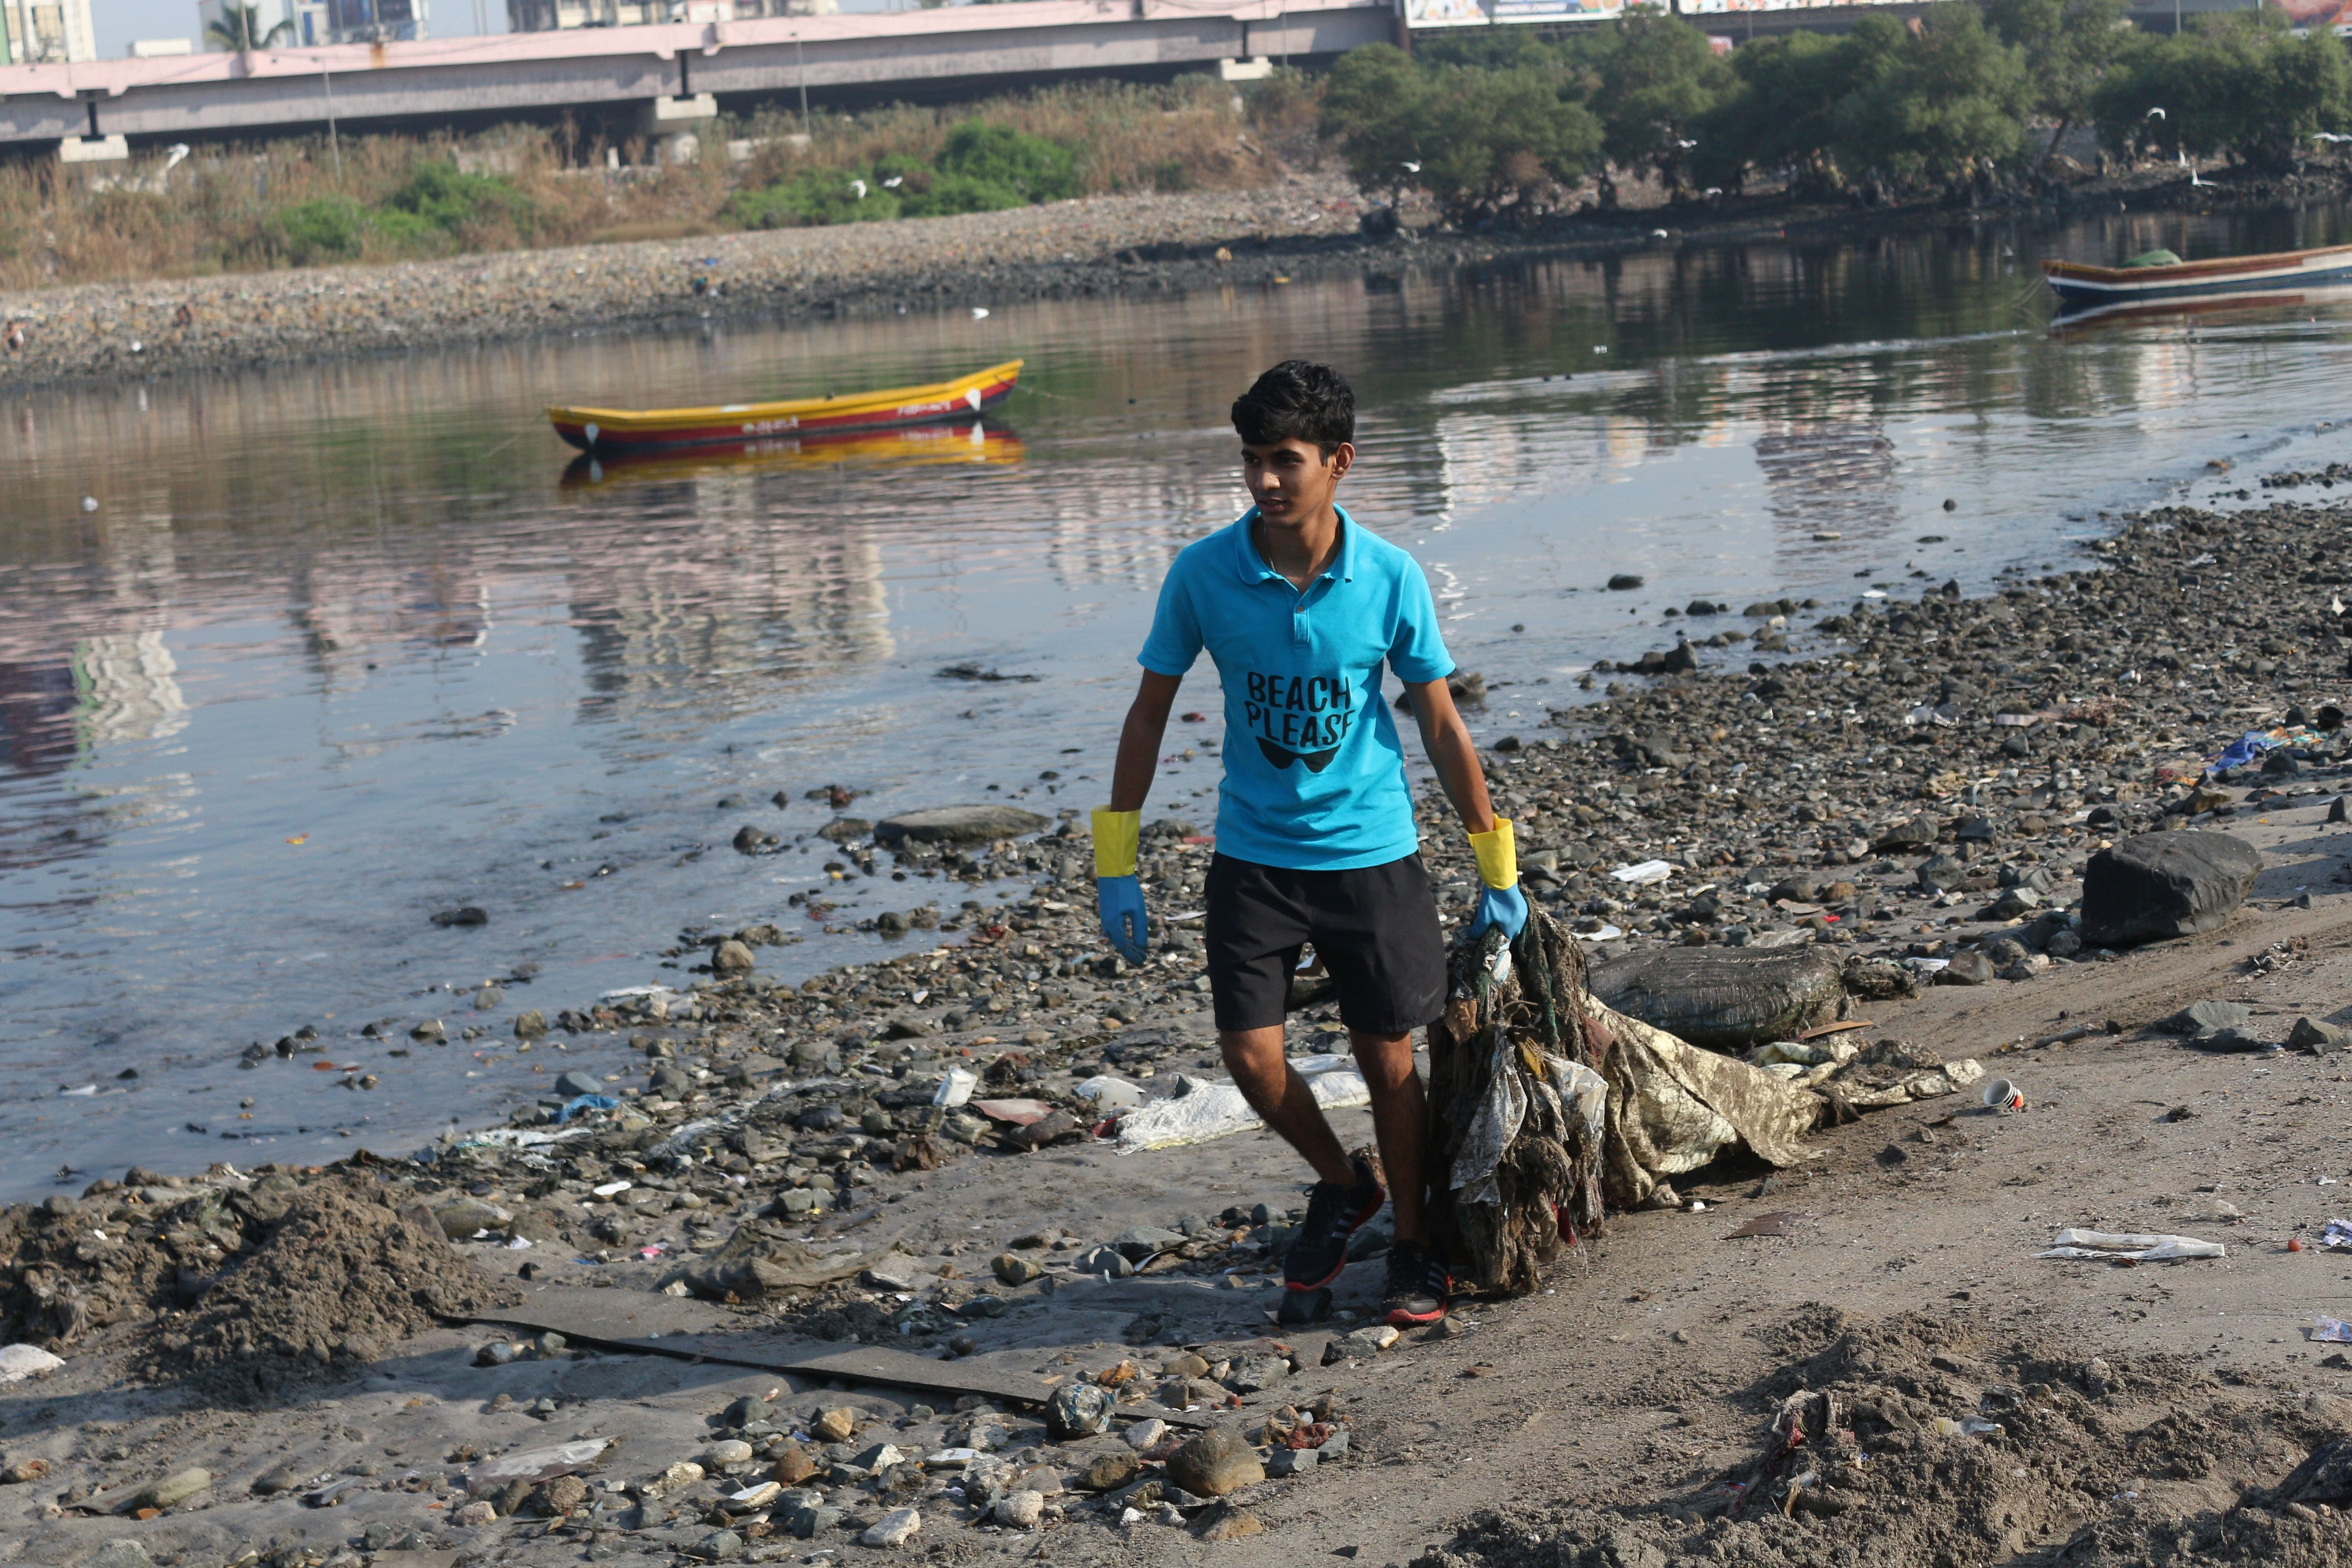 Cleaning up the trash at Mithi River. (Source: Beach Please)